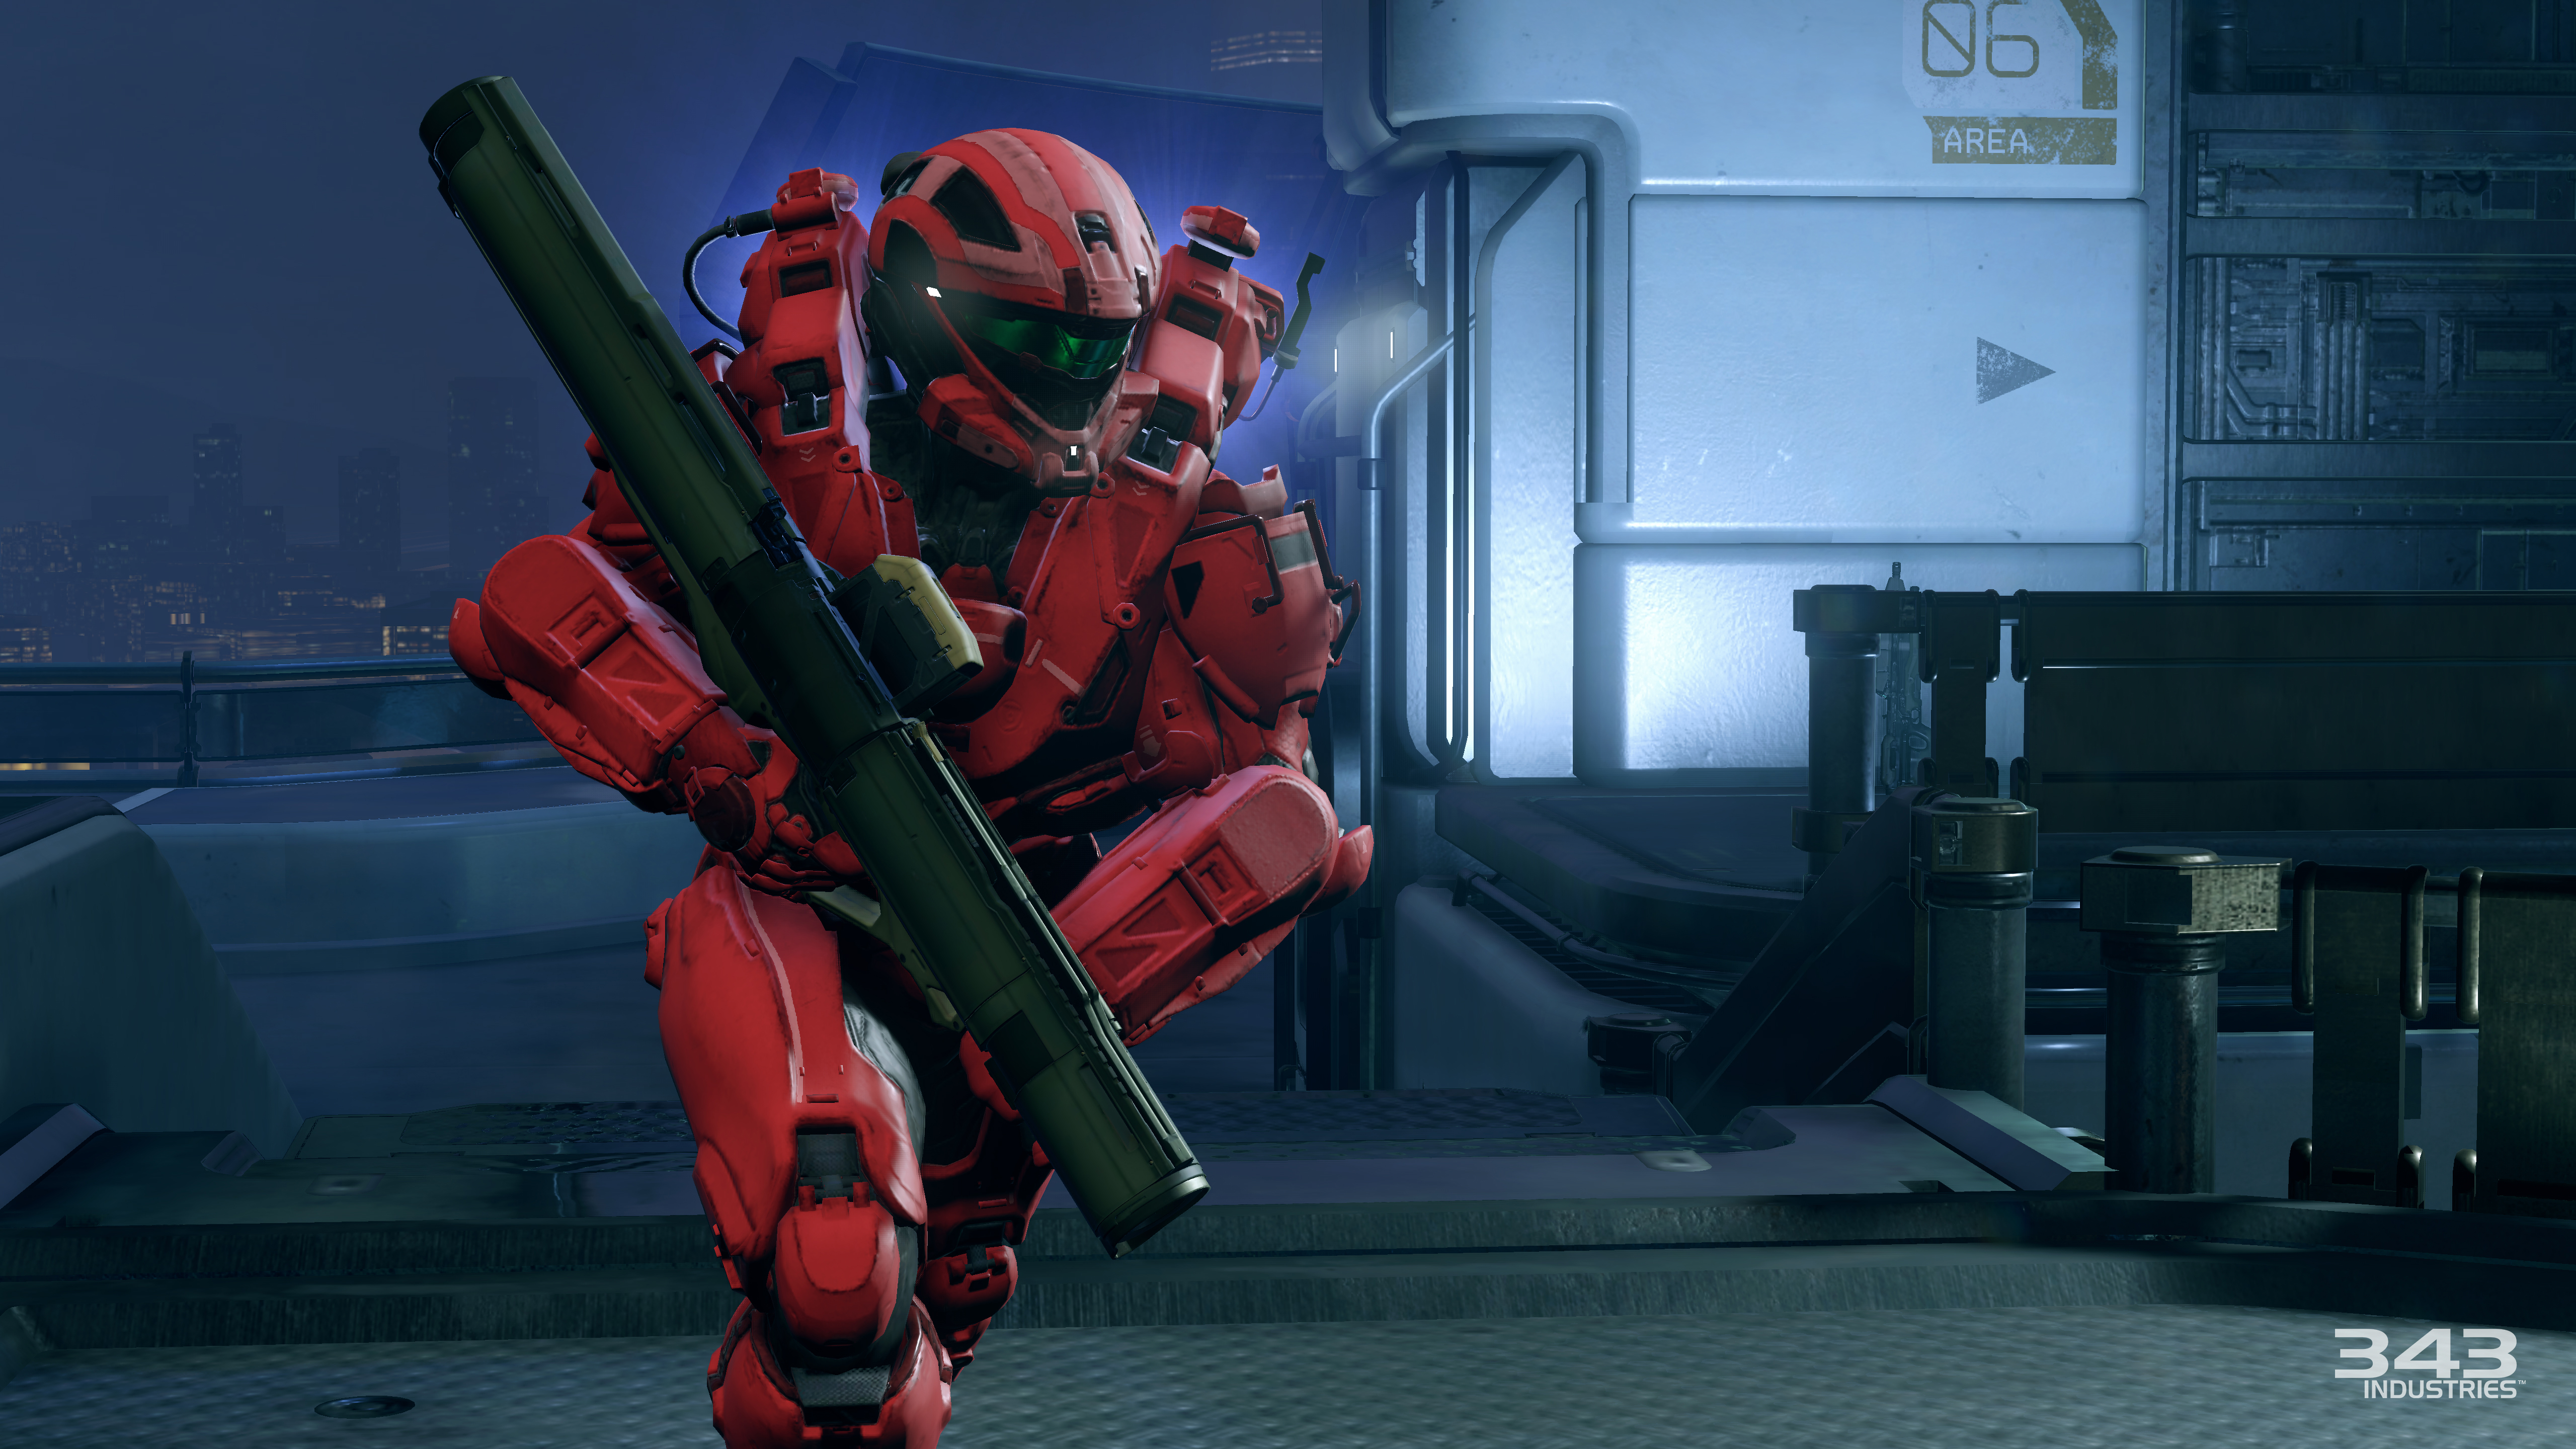 Halo: 5 Guardians is in beta now, so check out these highlights!